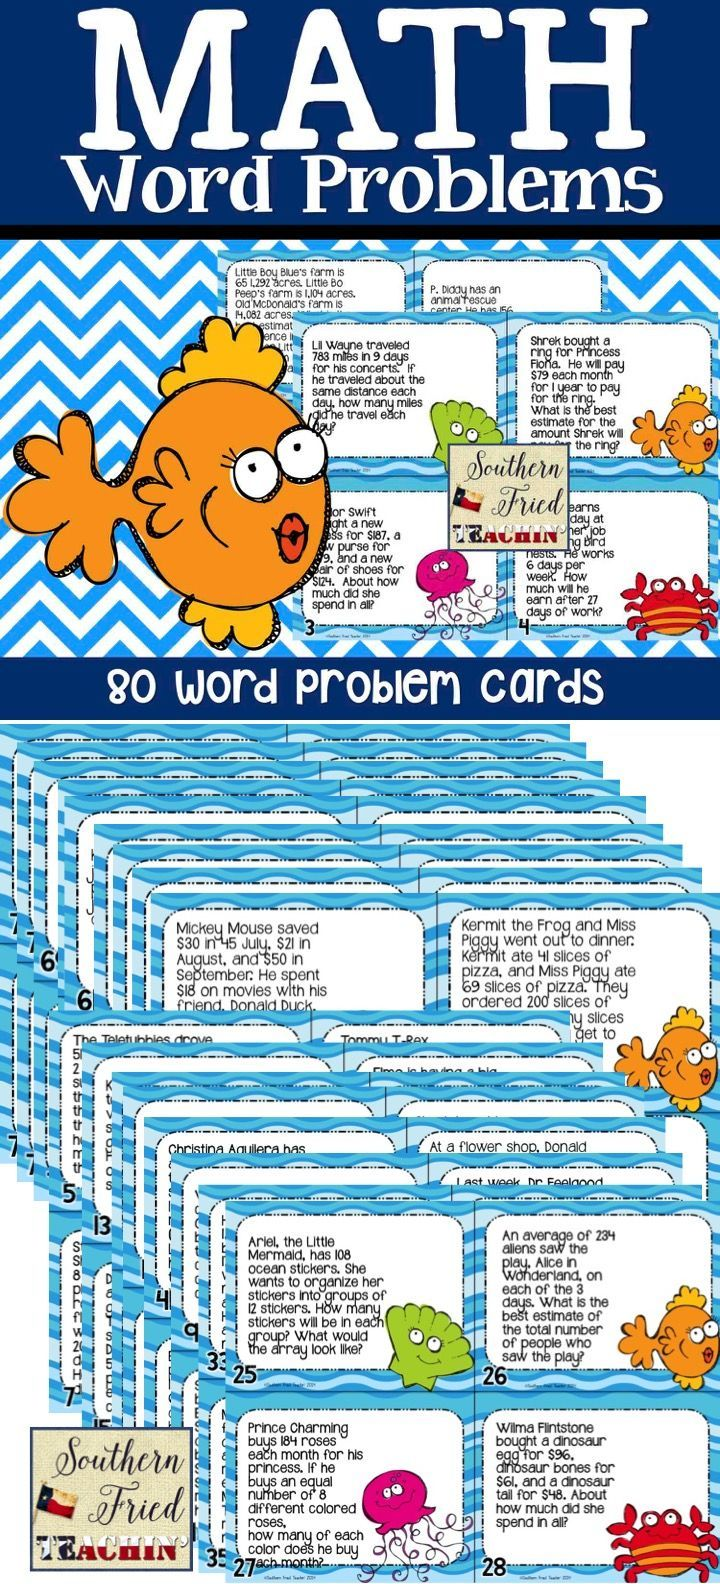 46 best Math Word Problems images on Pinterest | Math word problems ...